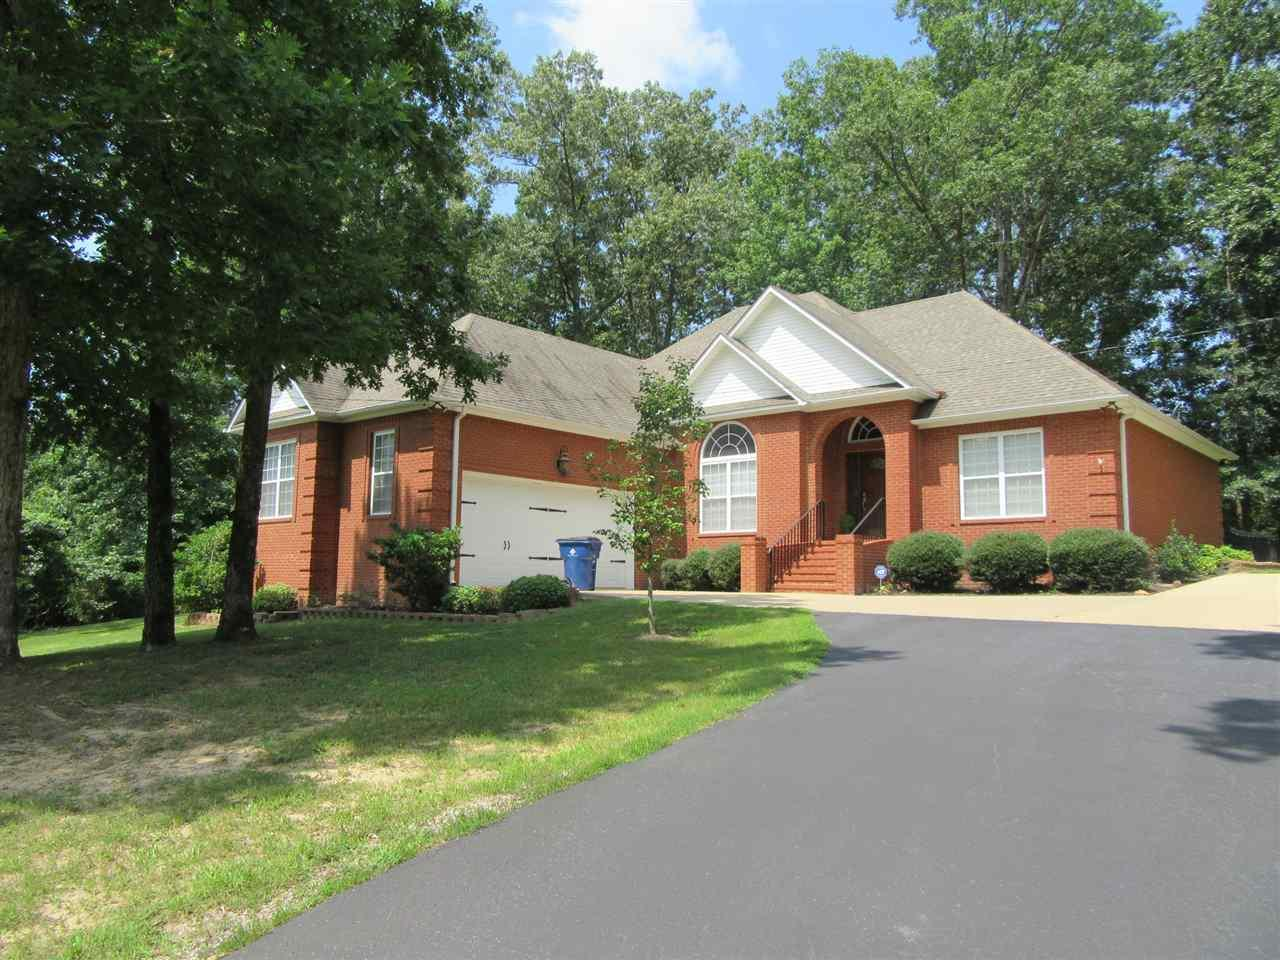 2581 Caney Branch Rd - Photo 1